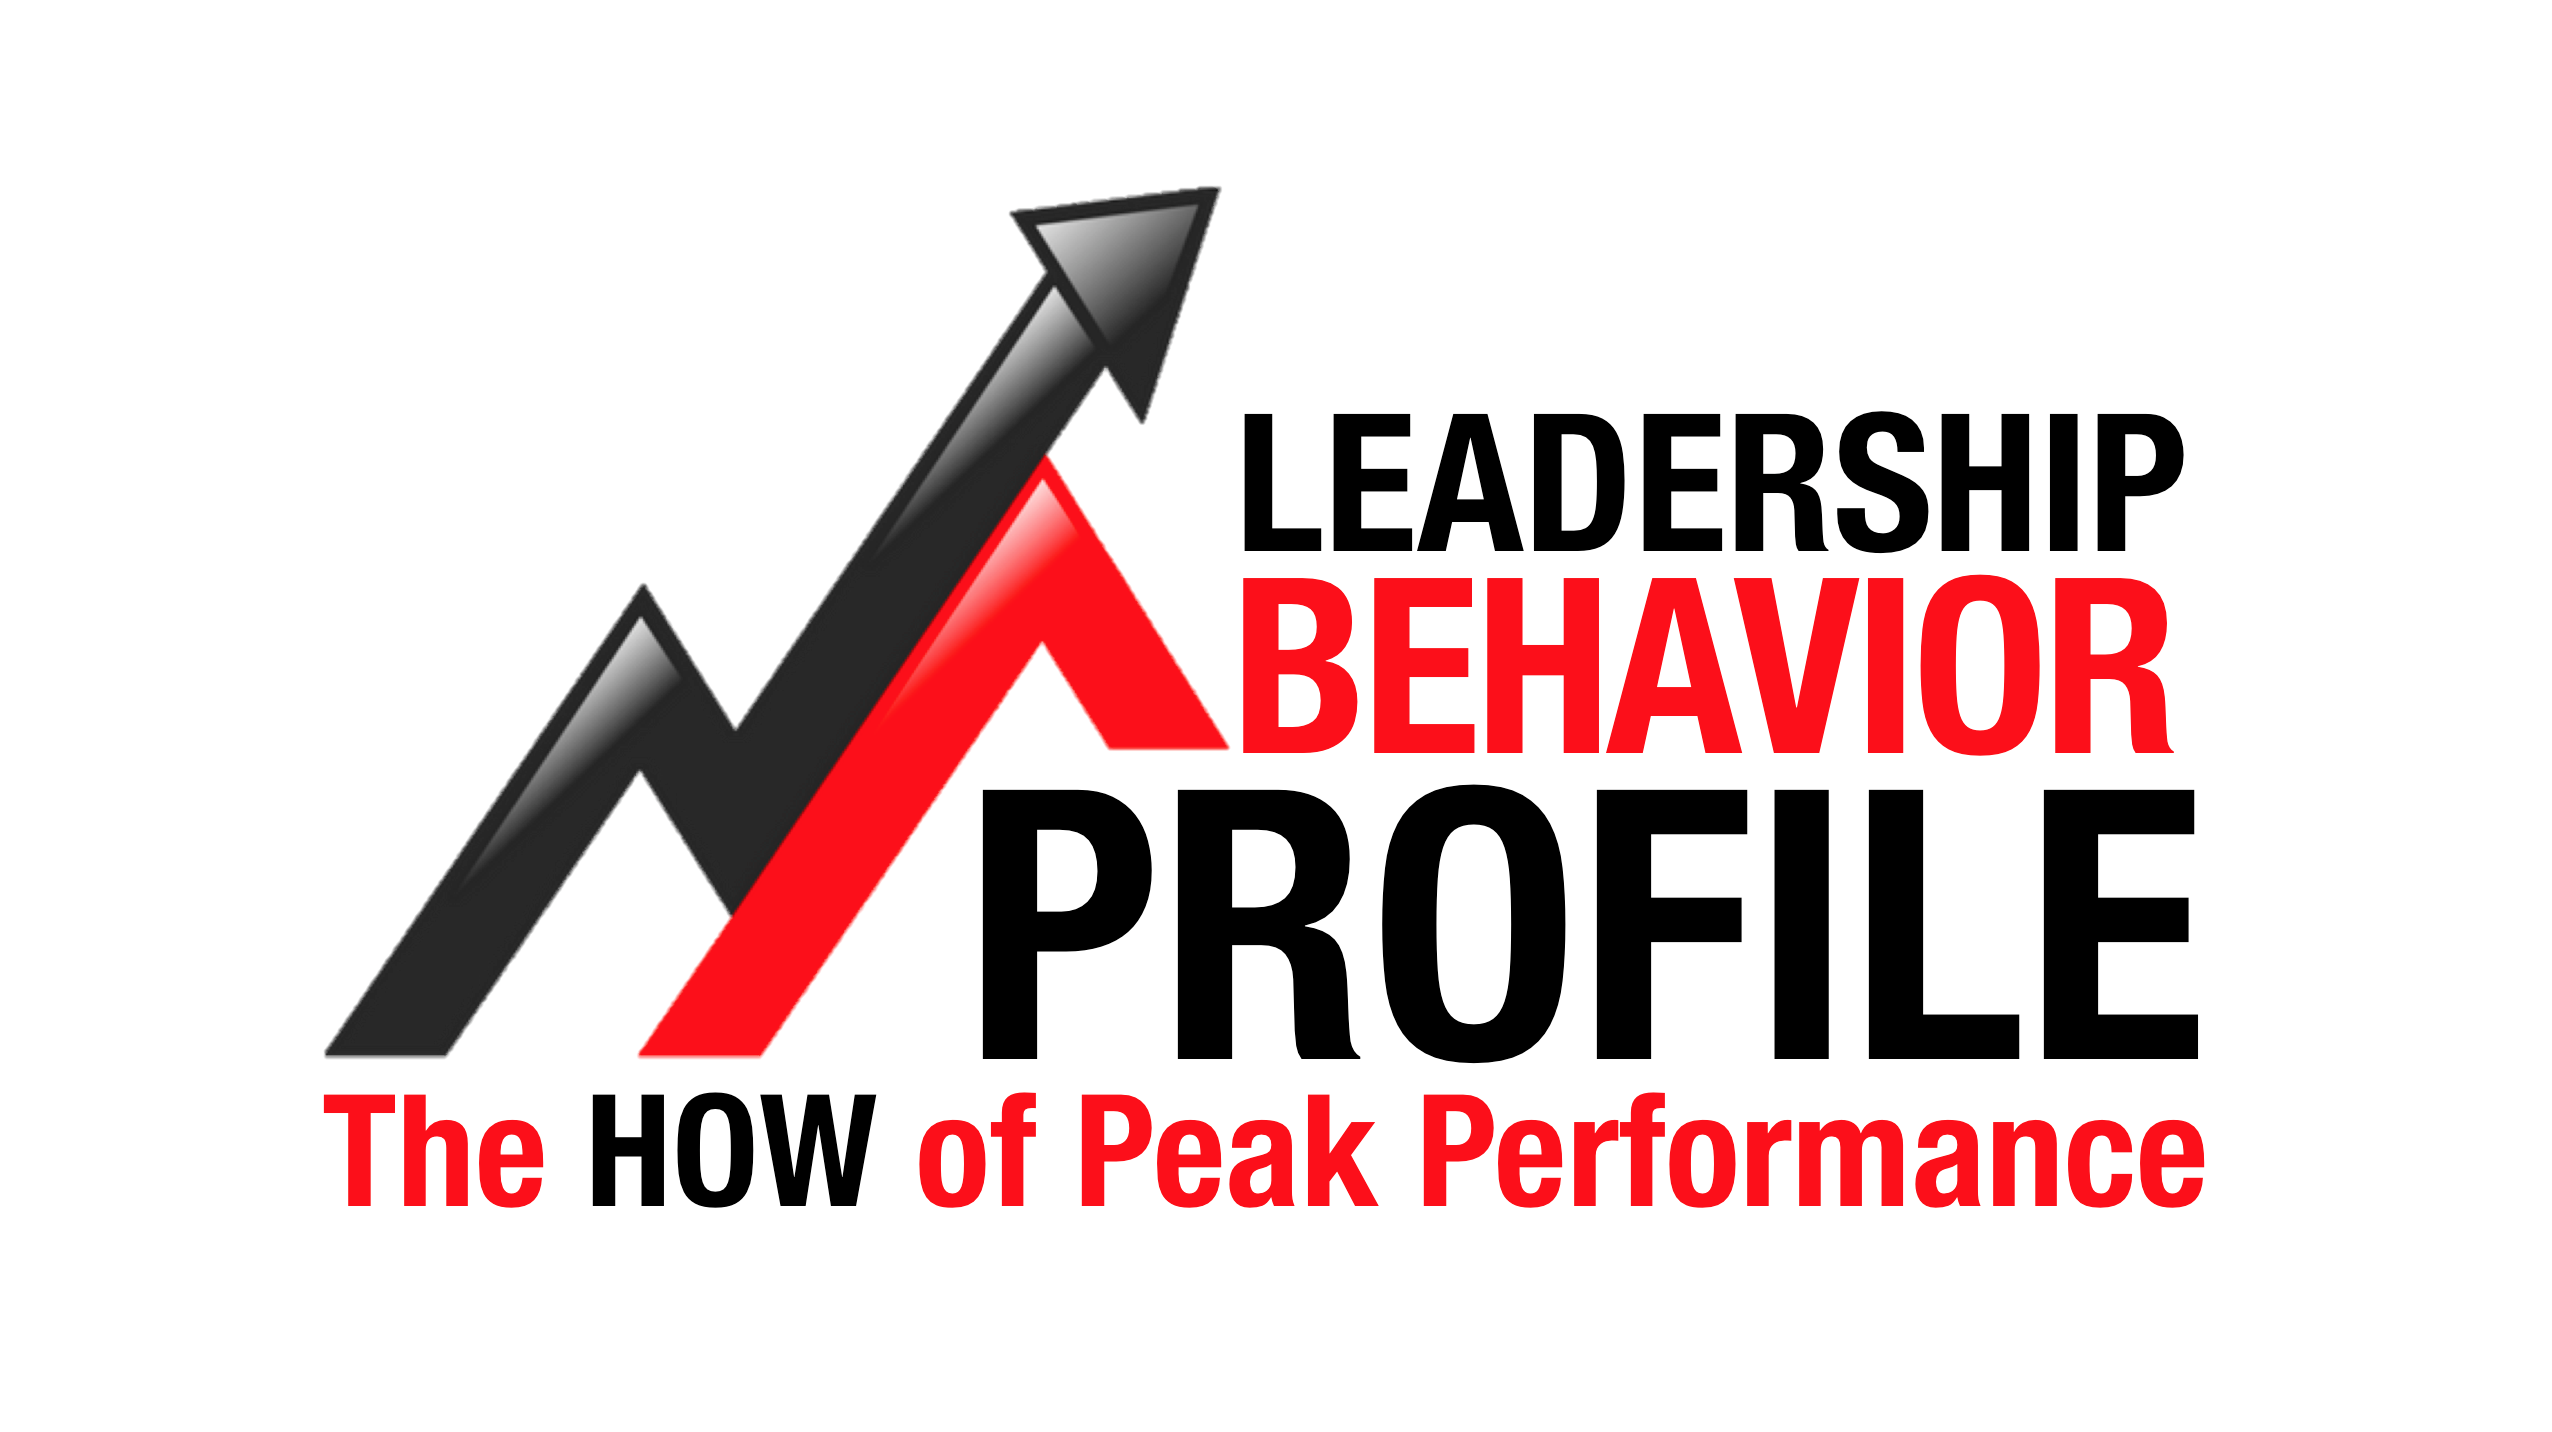 LEADERSHIP BEHAVIOR PROFILE